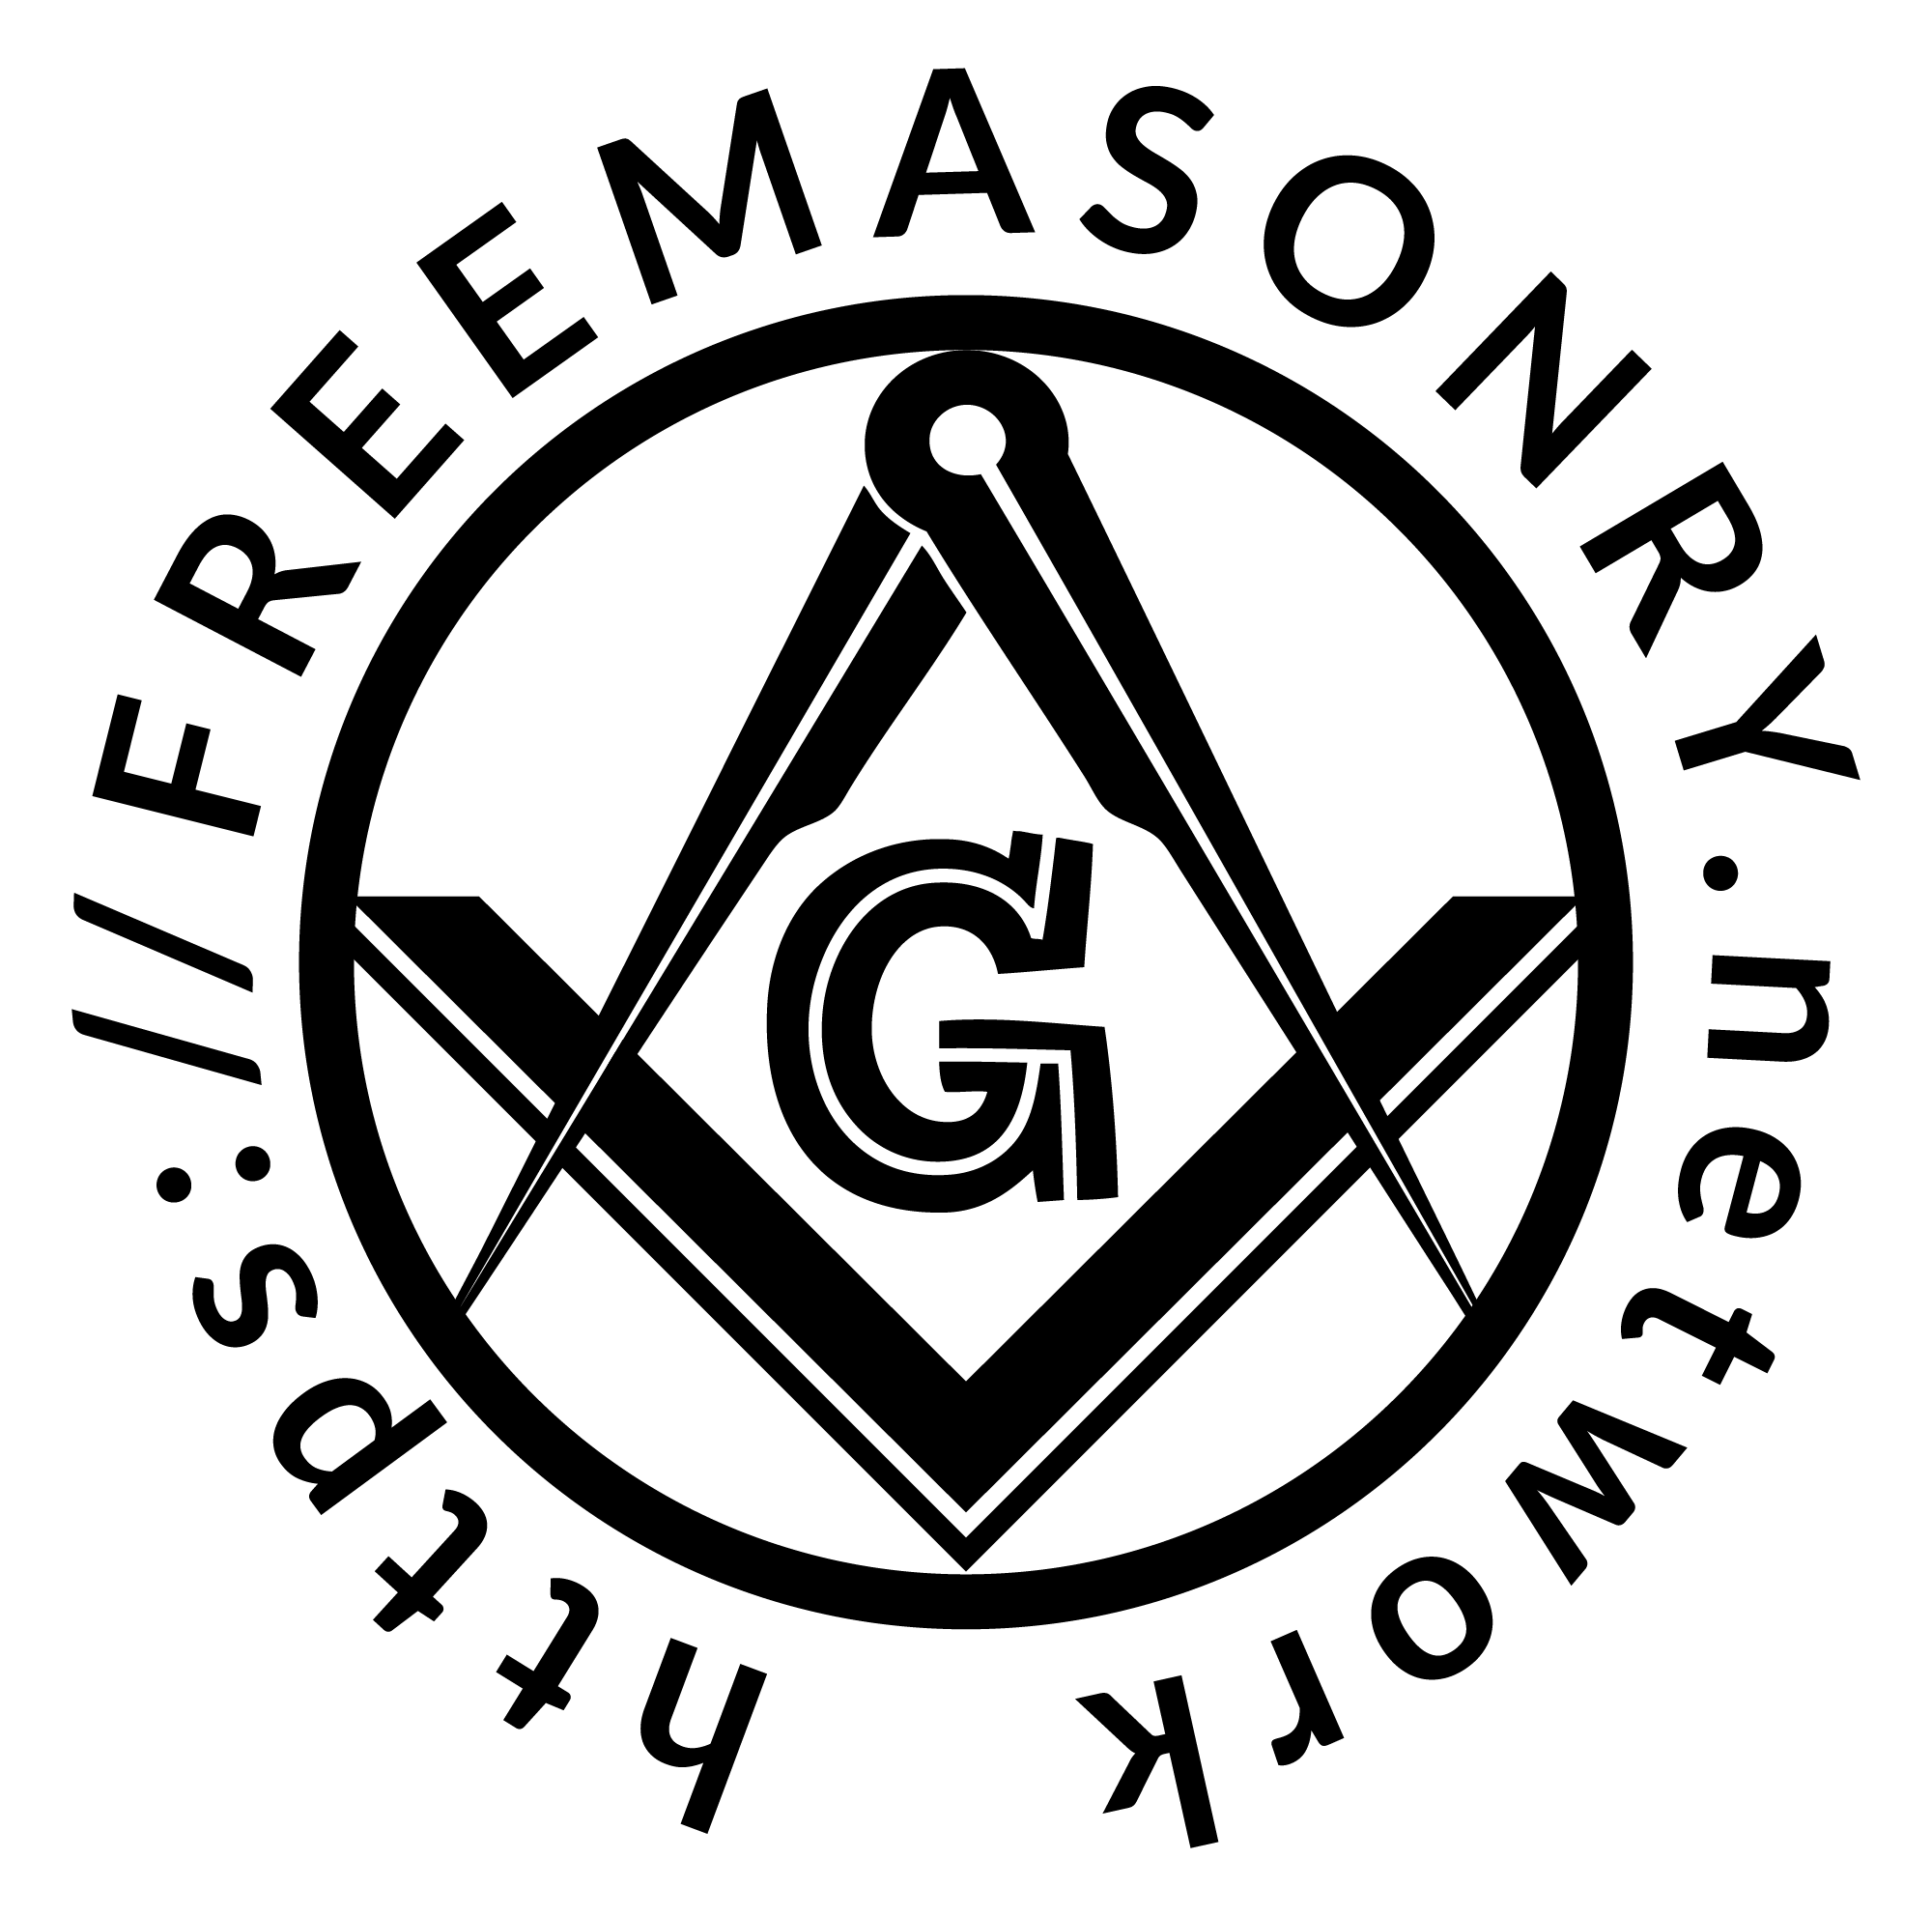 HISTORY OF ROYAL ARCH MASONRY